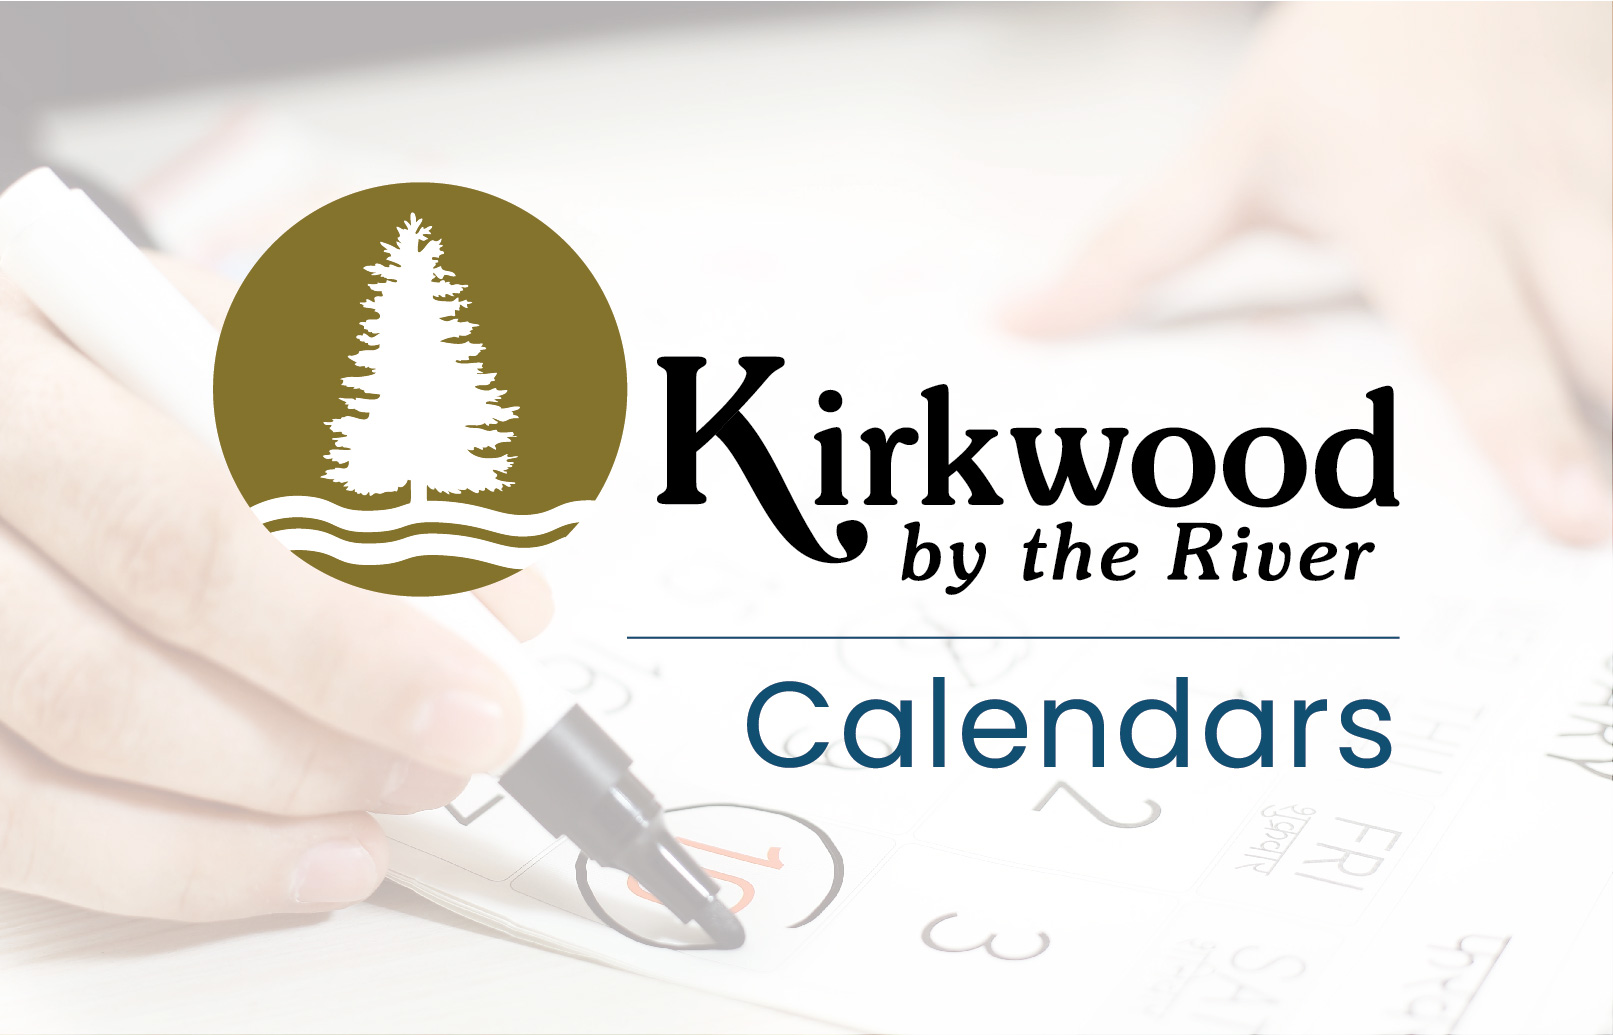 Kirkwood Calendar 2019 Program Calendars for Kirkwood by the River   Kirkwood